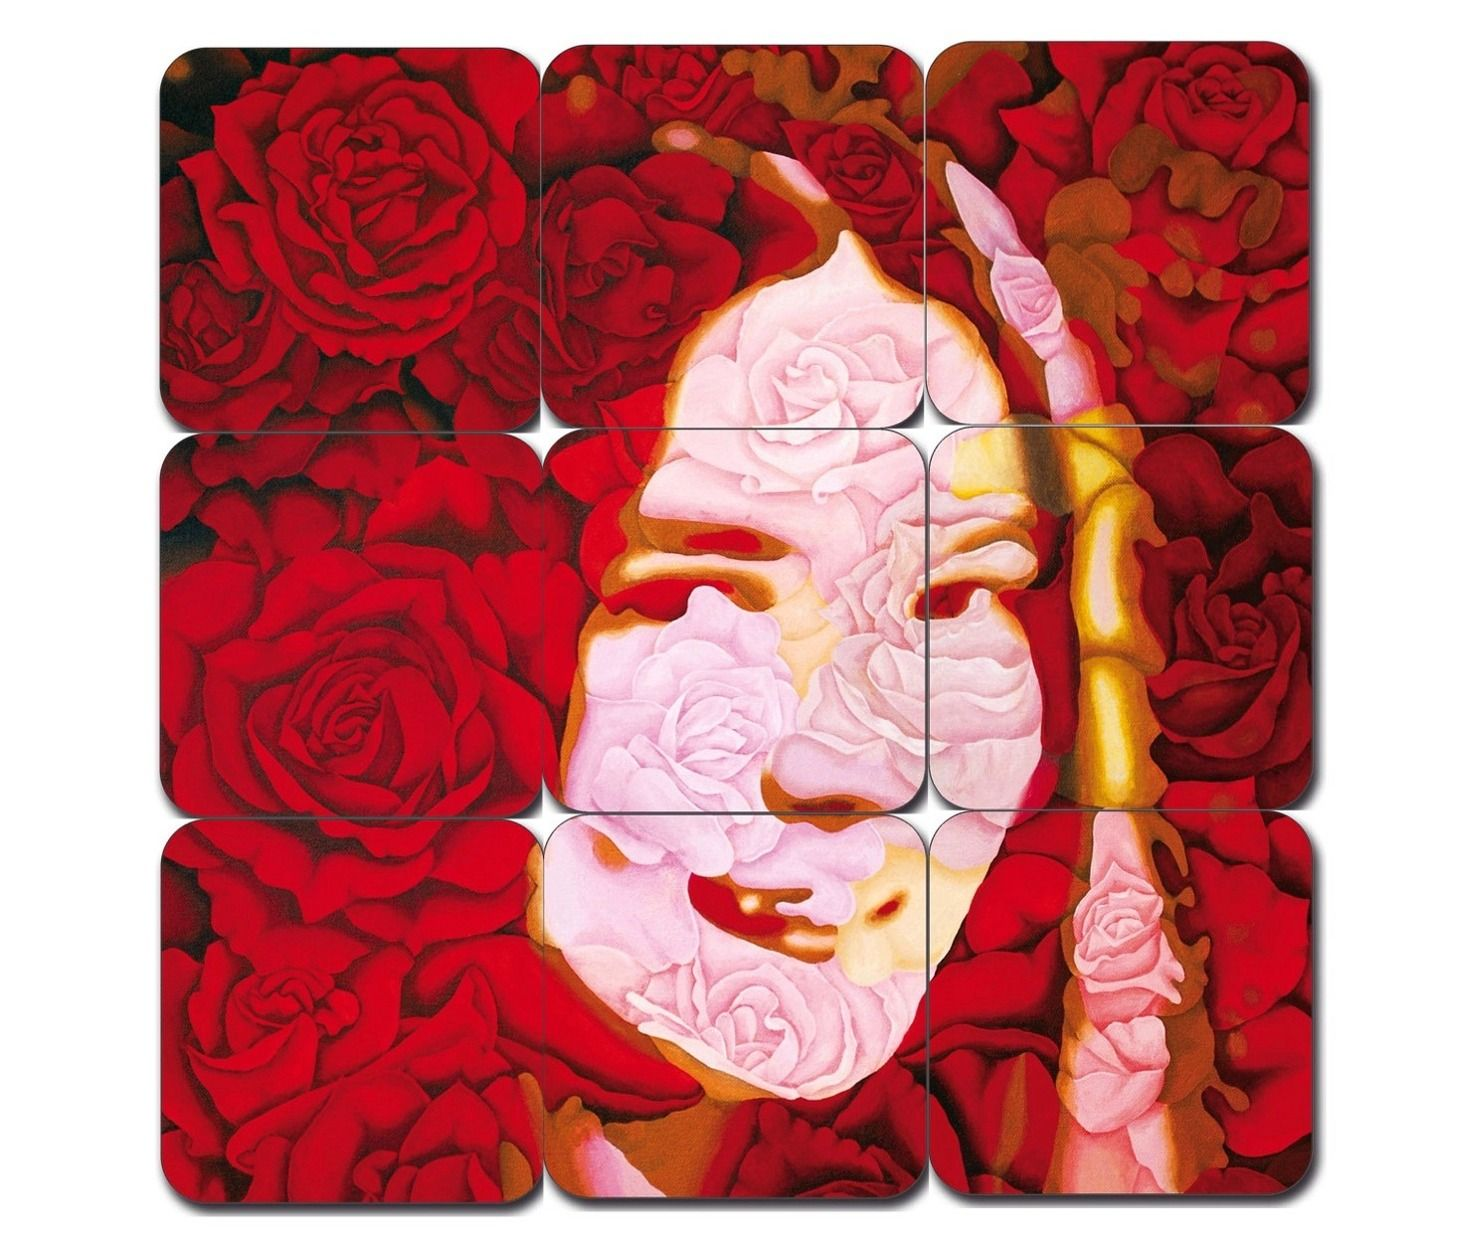 """Roses for Nina"". Painting by Werner Horvath as beer mat puzzle."